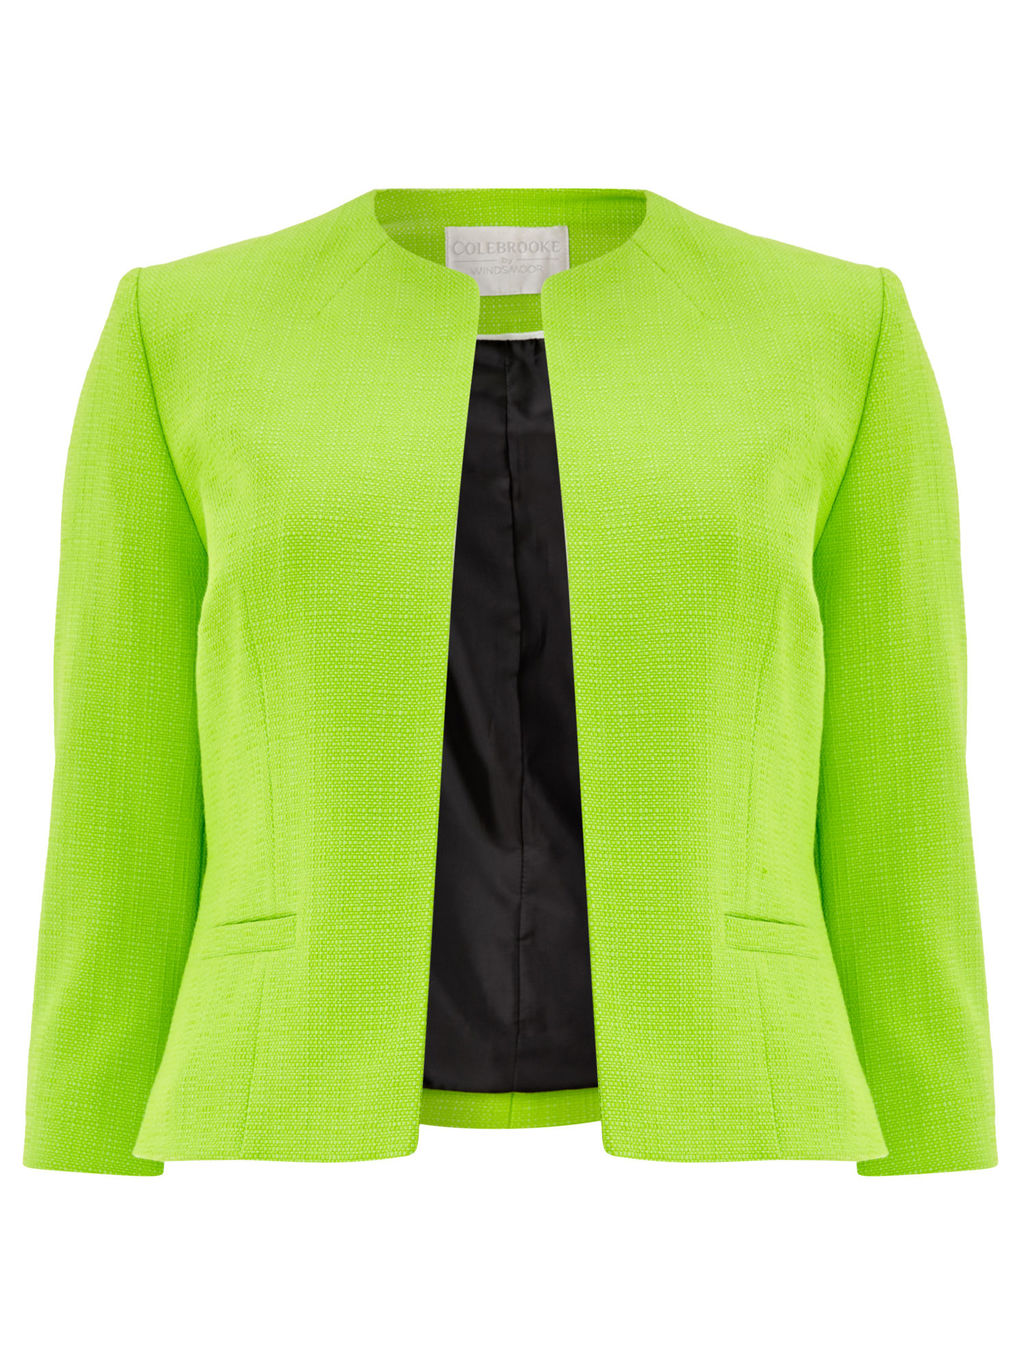 Edge To Edge Jacket, Bright Green - pattern: plain; style: single breasted blazer; collar: round collar/collarless; predominant colour: lime; fit: tailored/fitted; fibres: cotton - stretch; occasions: occasion; sleeve length: 3/4 length; sleeve style: standard; collar break: high; pattern type: fabric; texture group: woven light midweight; length: cropped; season: s/s 2016; wardrobe: event